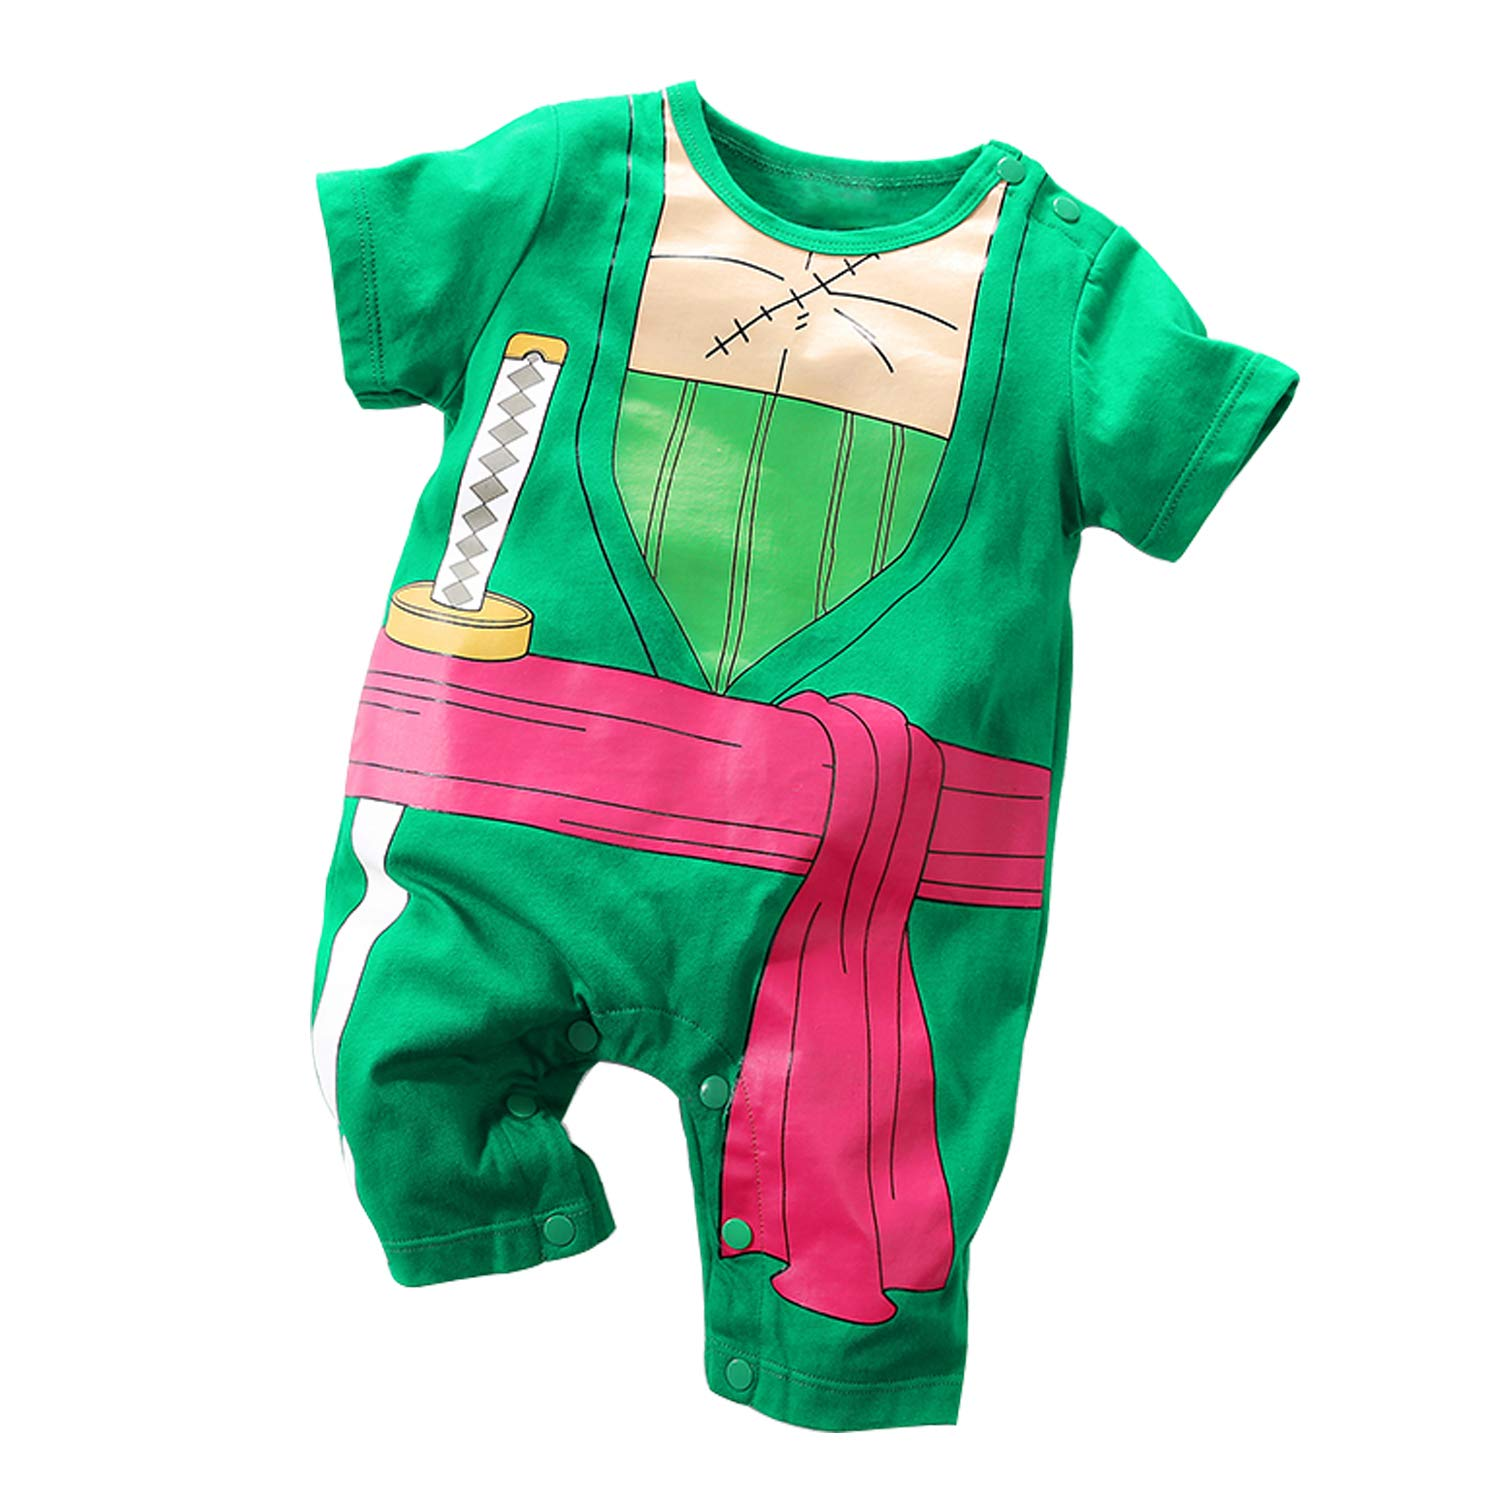 YFYBaby Newborn Baby Clothes Cosplay One Piece Luffy Sulong Lovely Short Sleeve Cartoon Romper Baby Rompers